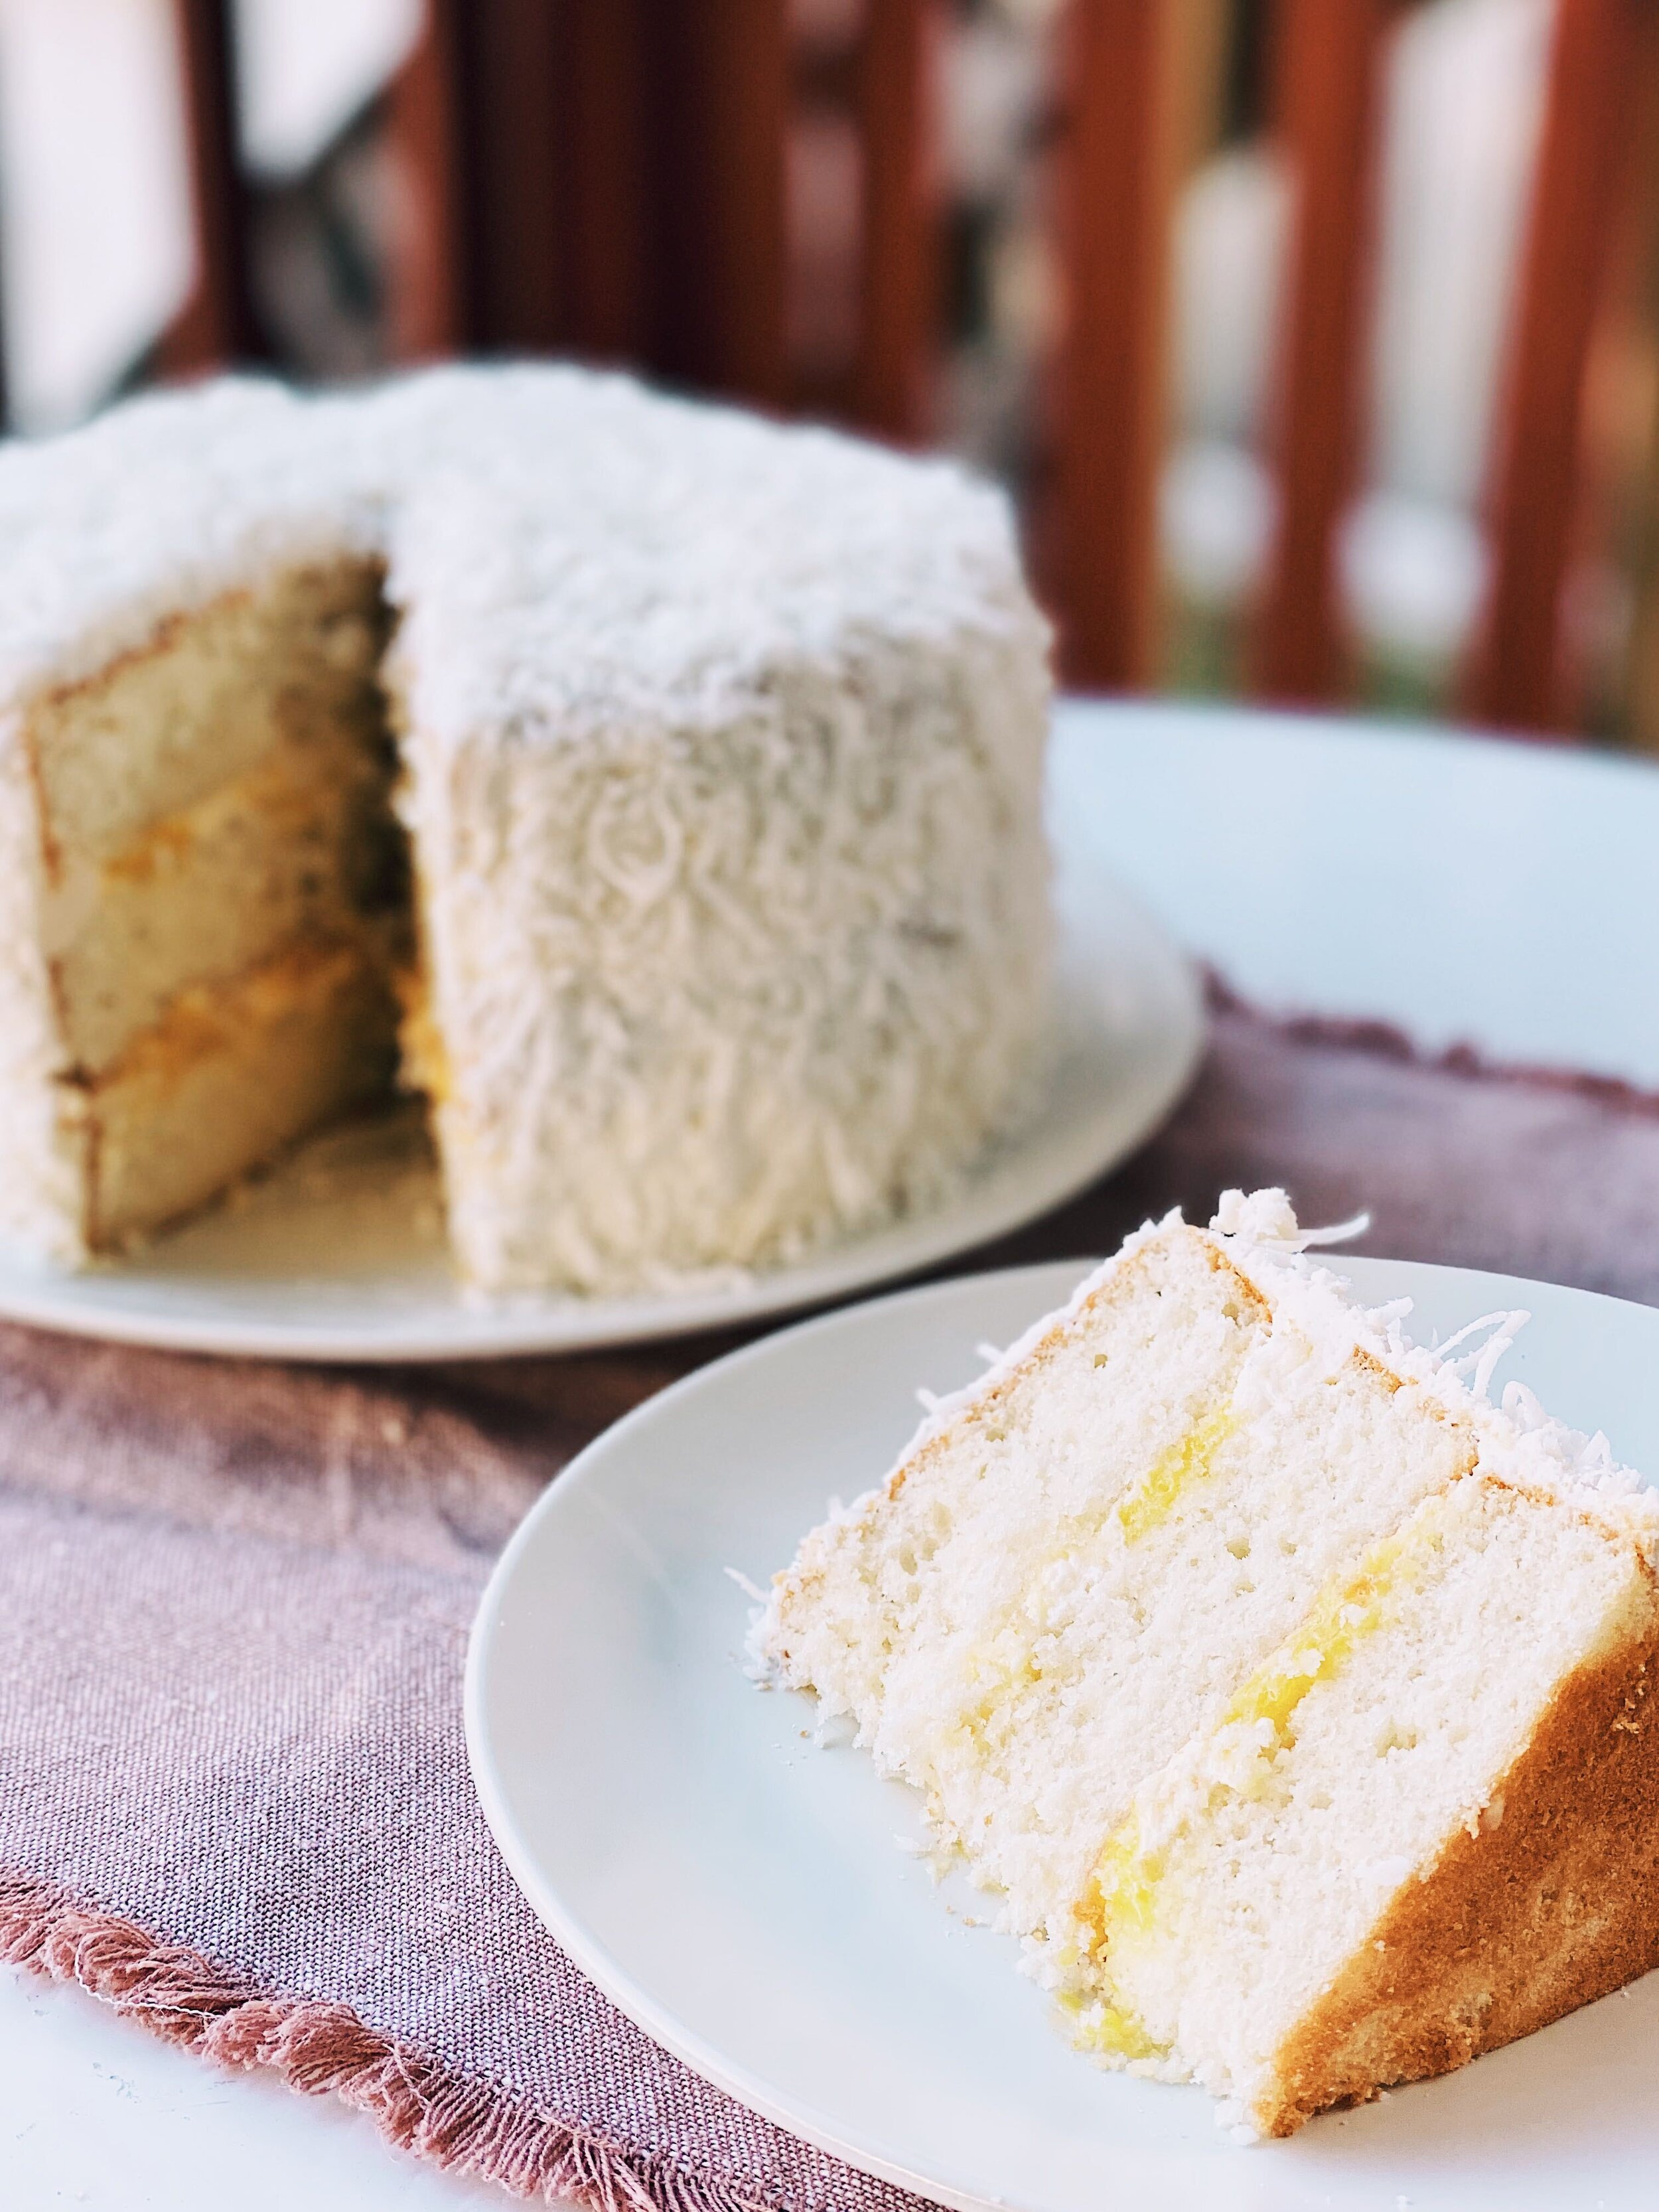 Coconut Layer Cake with Lemon Curd Filling | Becca Bakes (www.wulanhaotej.tw)